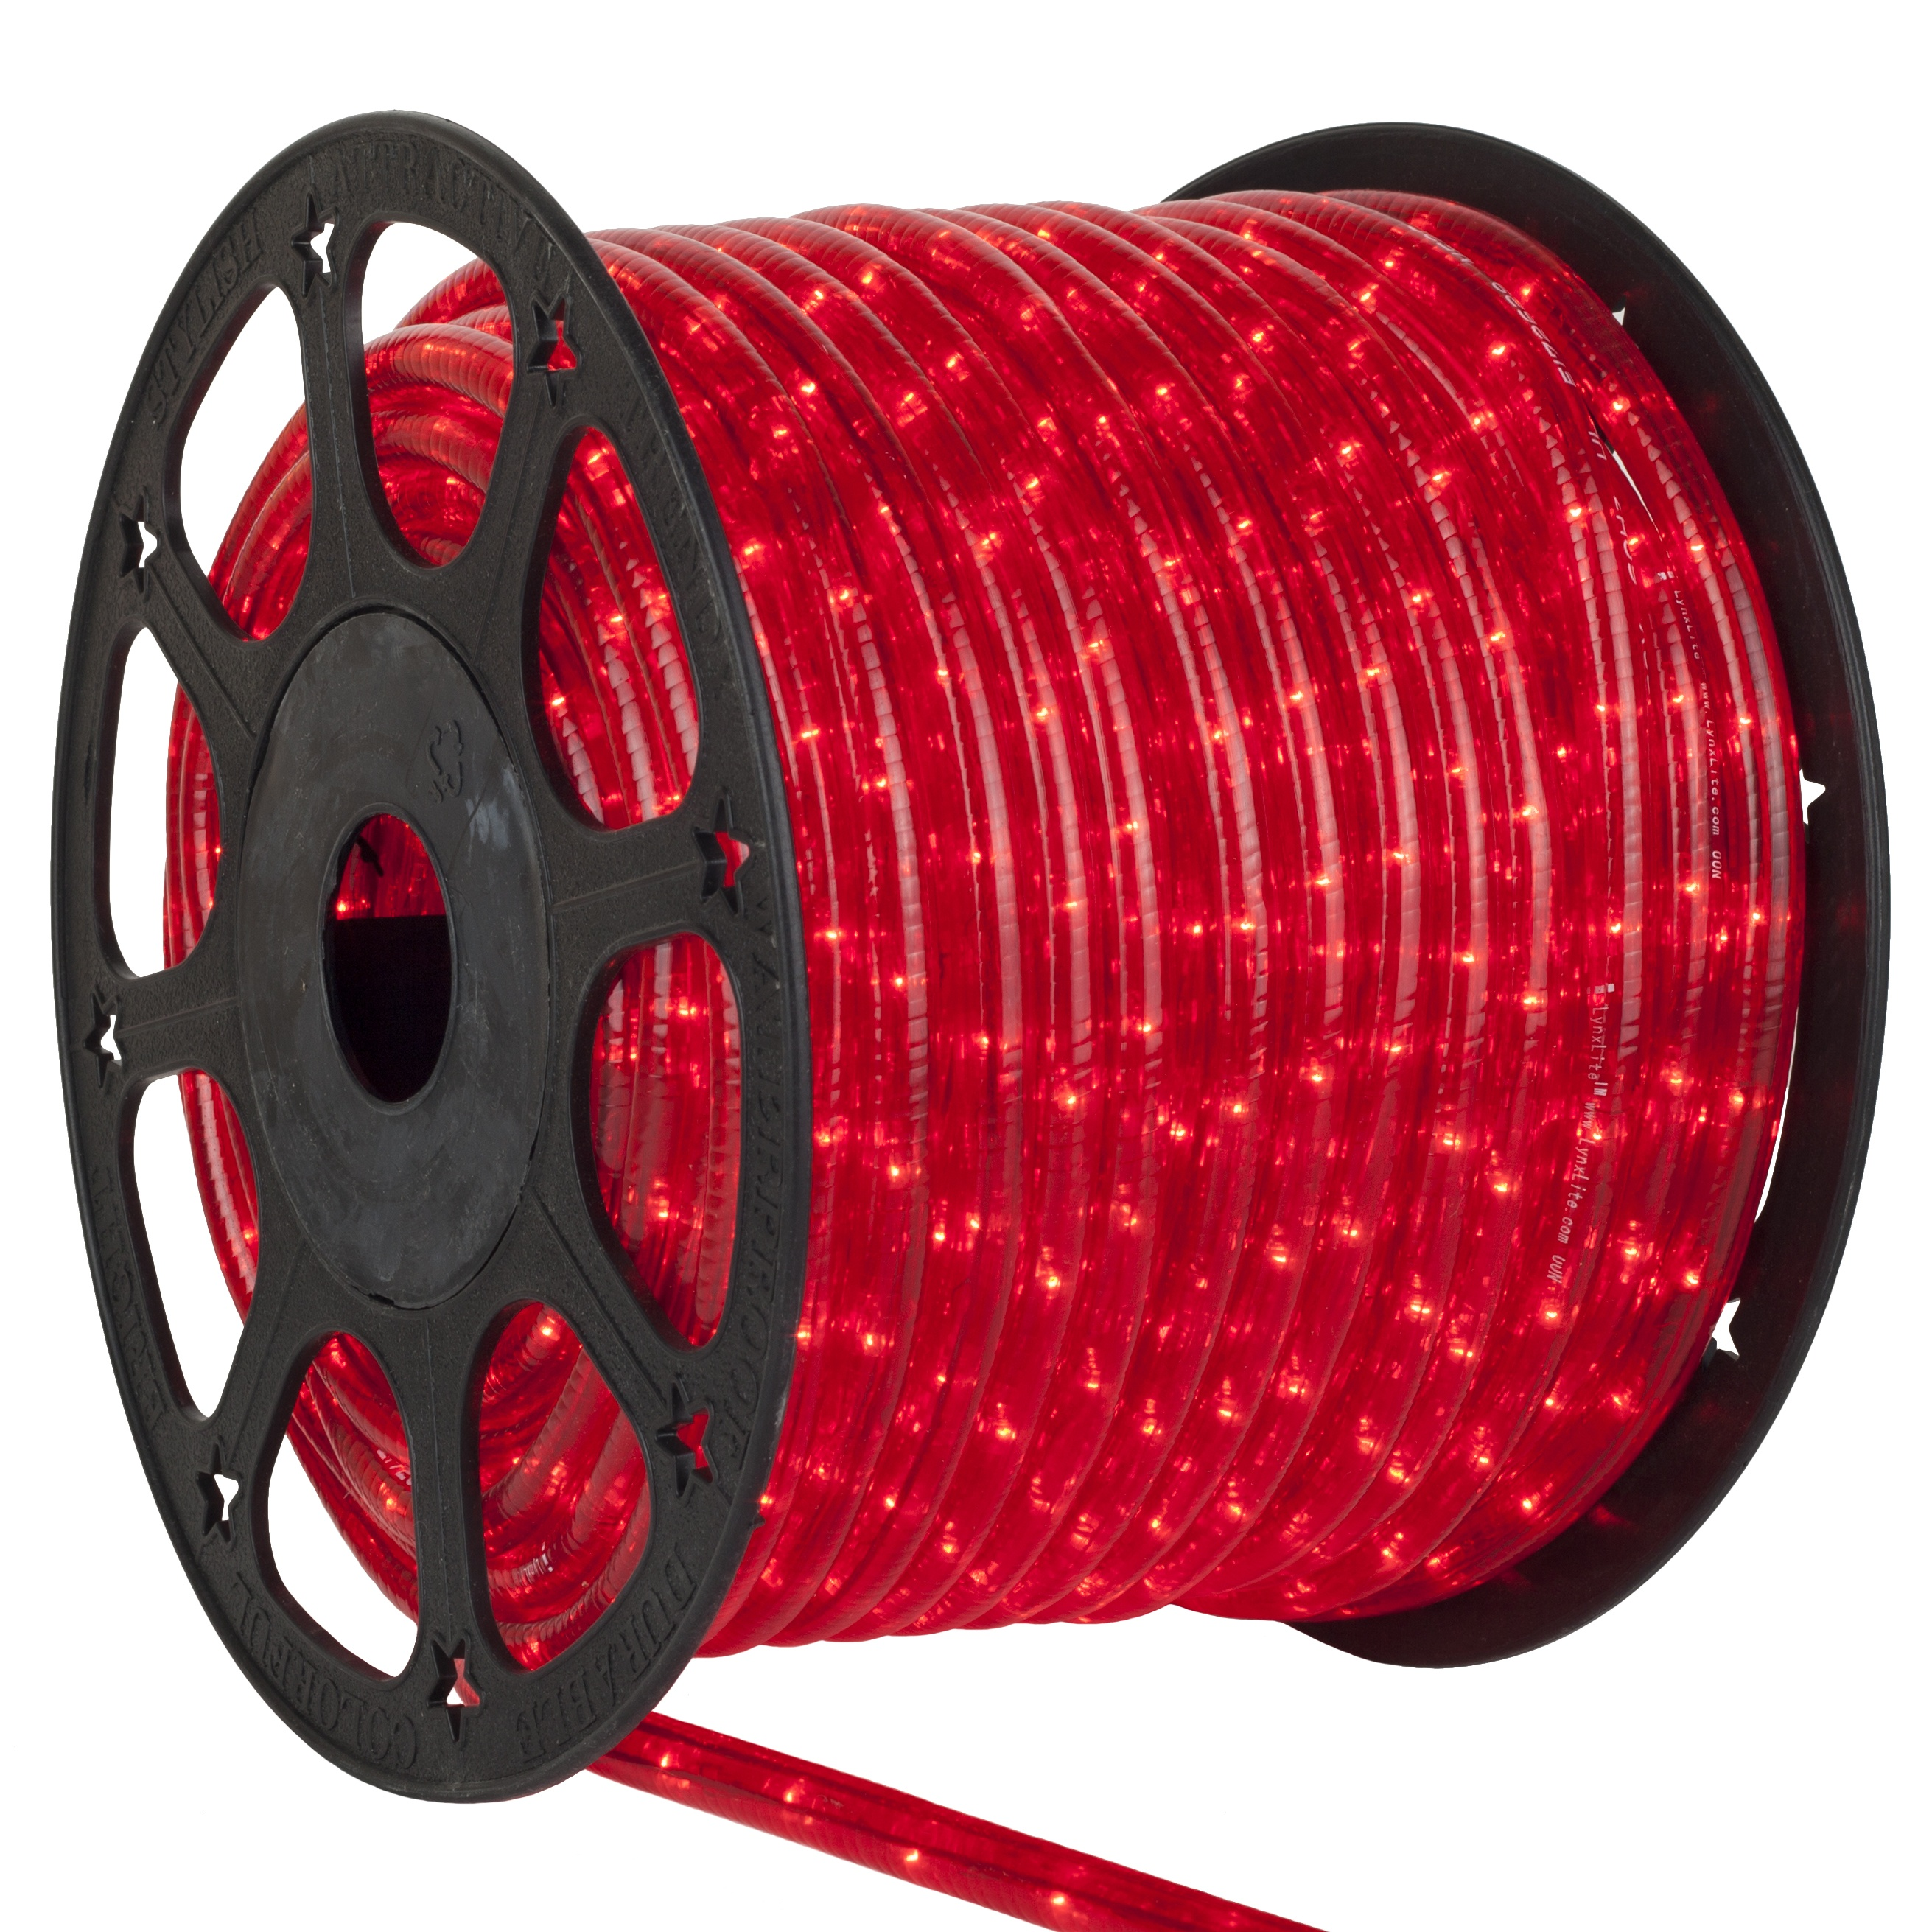 Rope Lights Rope Light 150 39 Red Mini Rope Light Commercial Spool